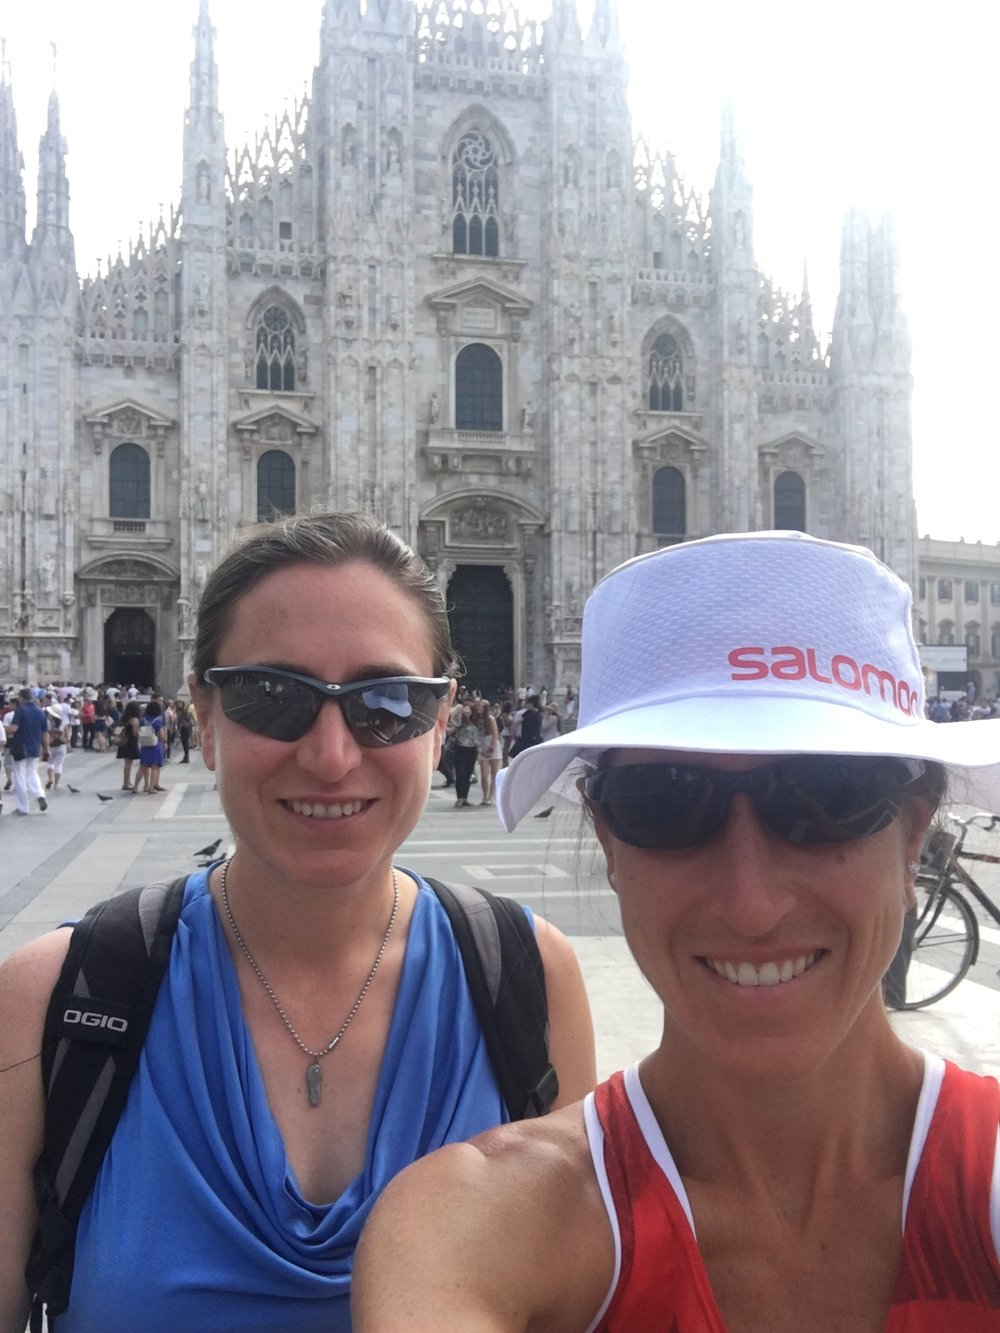 """Exploring Milan! Unfortunately we were not allowed in the church in the background as my running attire was """"too revealing""""."""